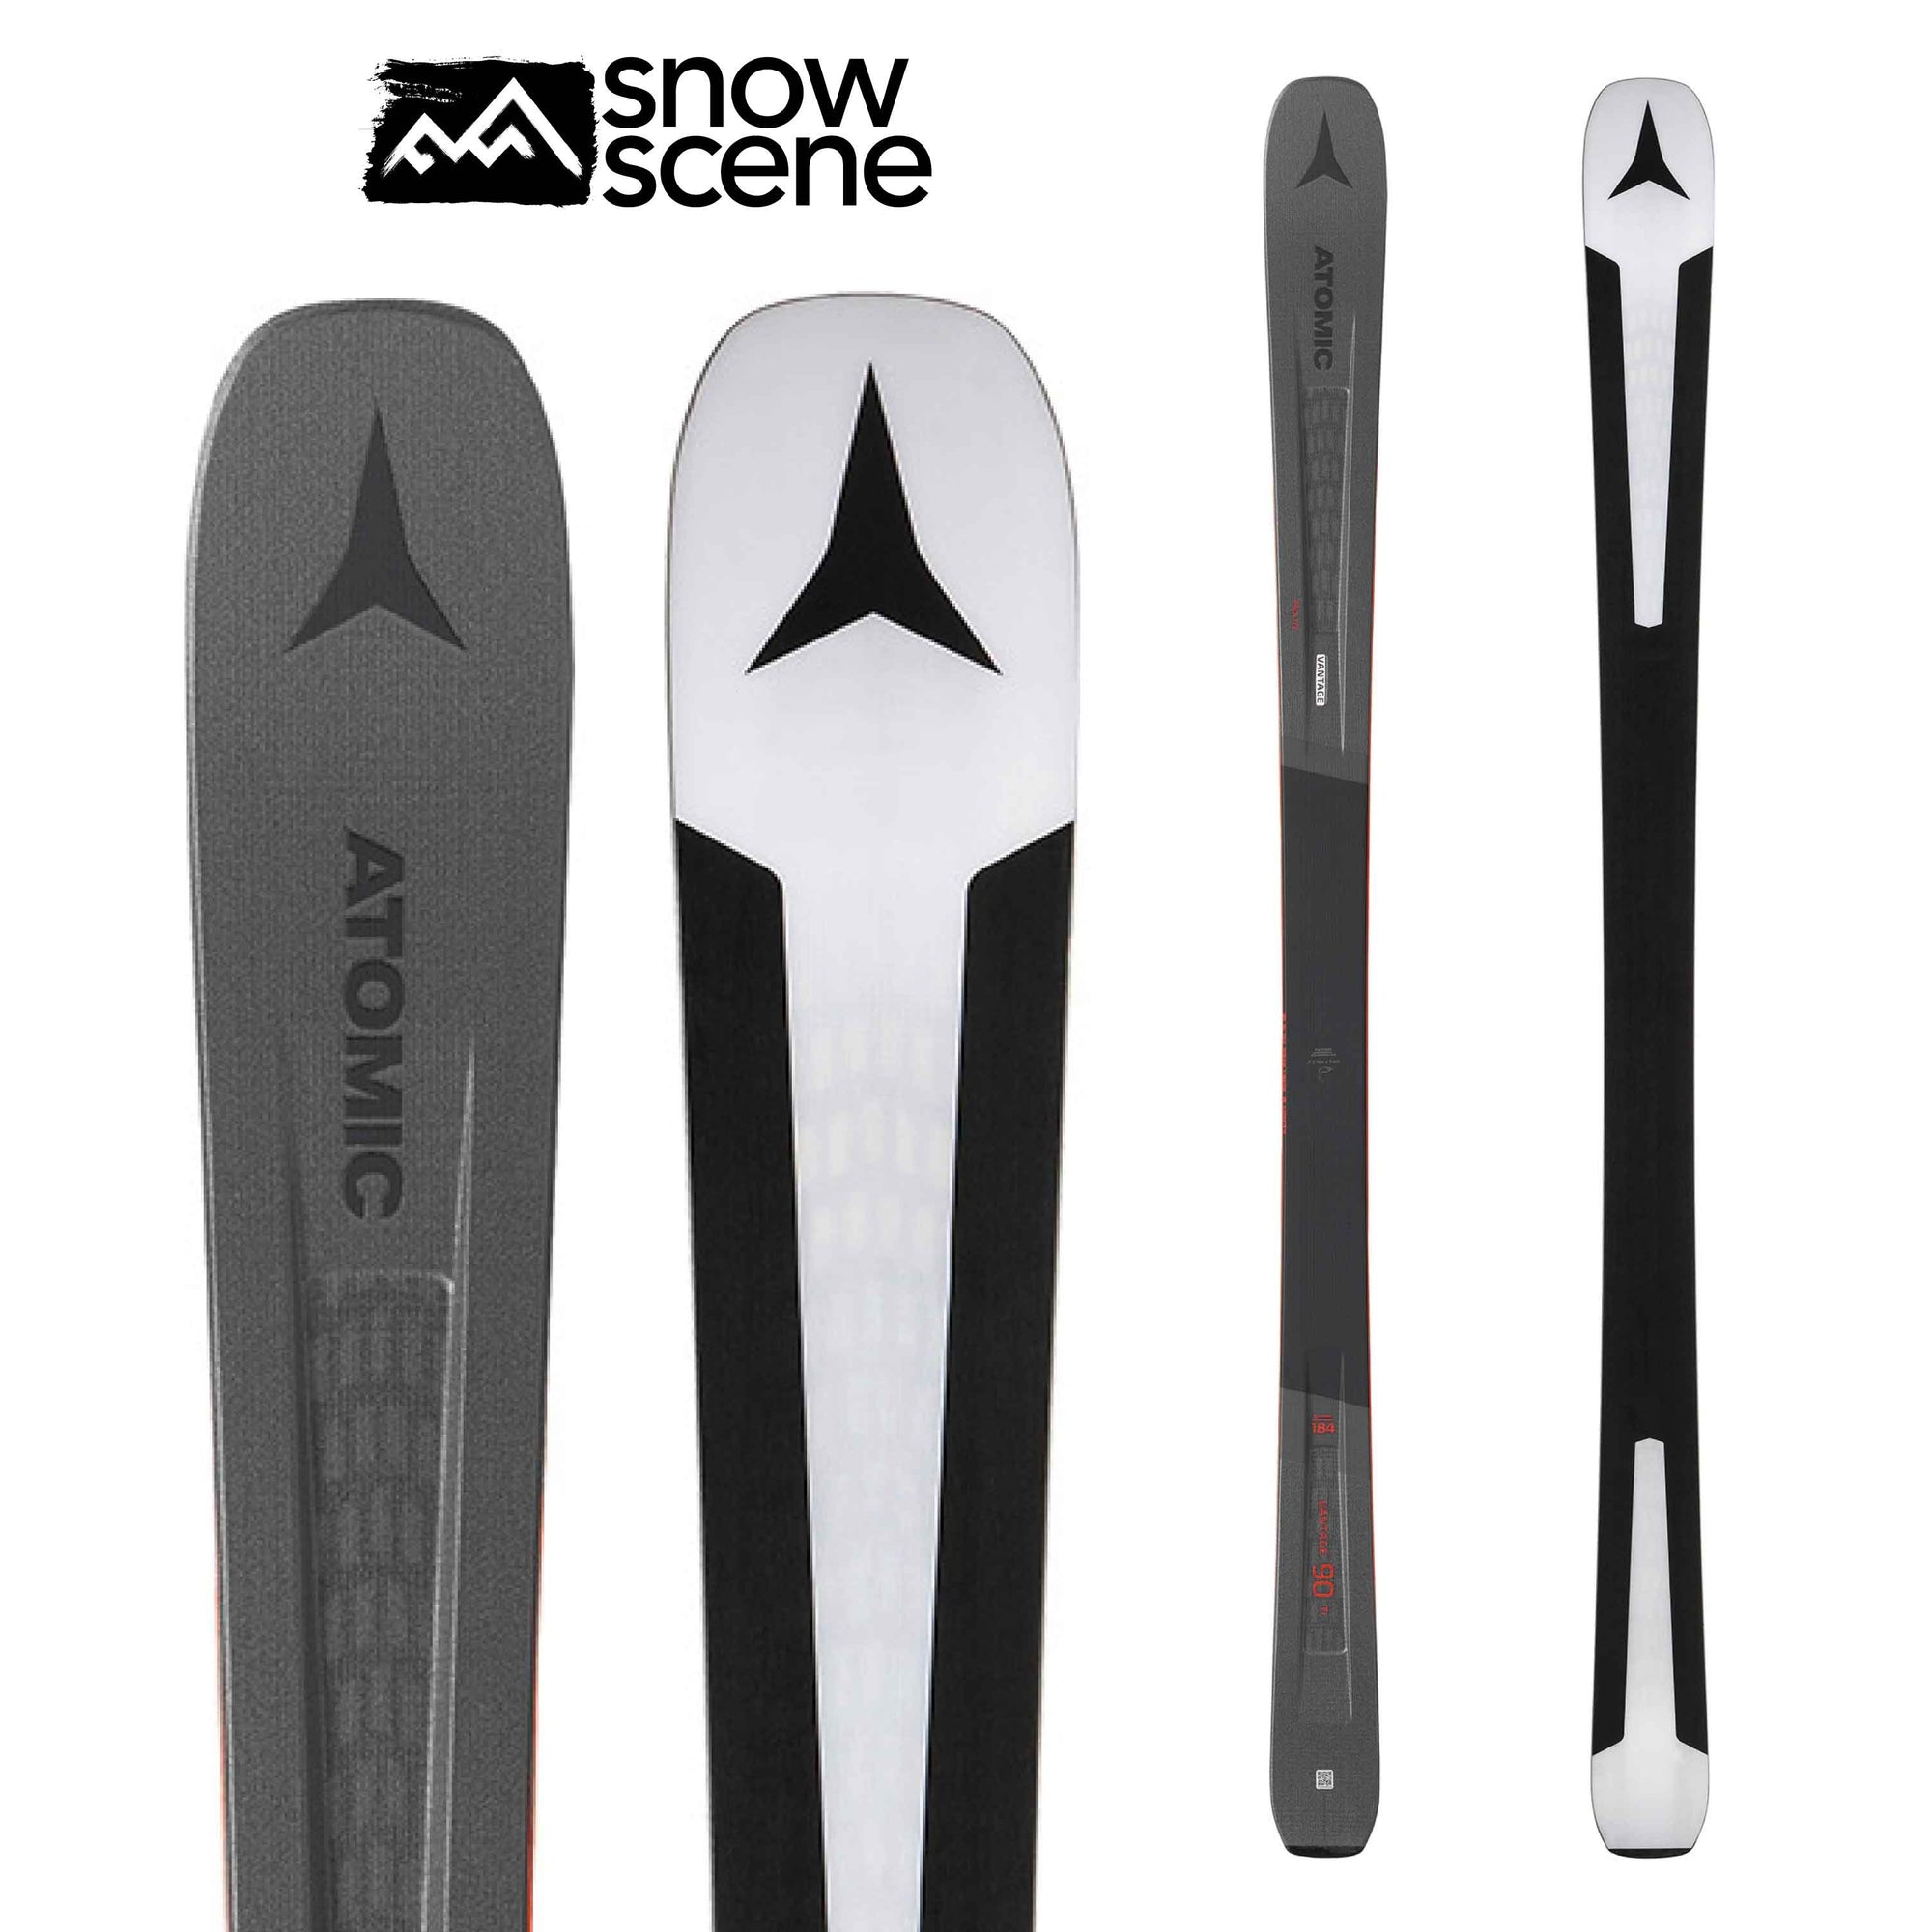 2020 Atomic Vantage 90 TI- Shop Skis and snow gear online nz - snowscene